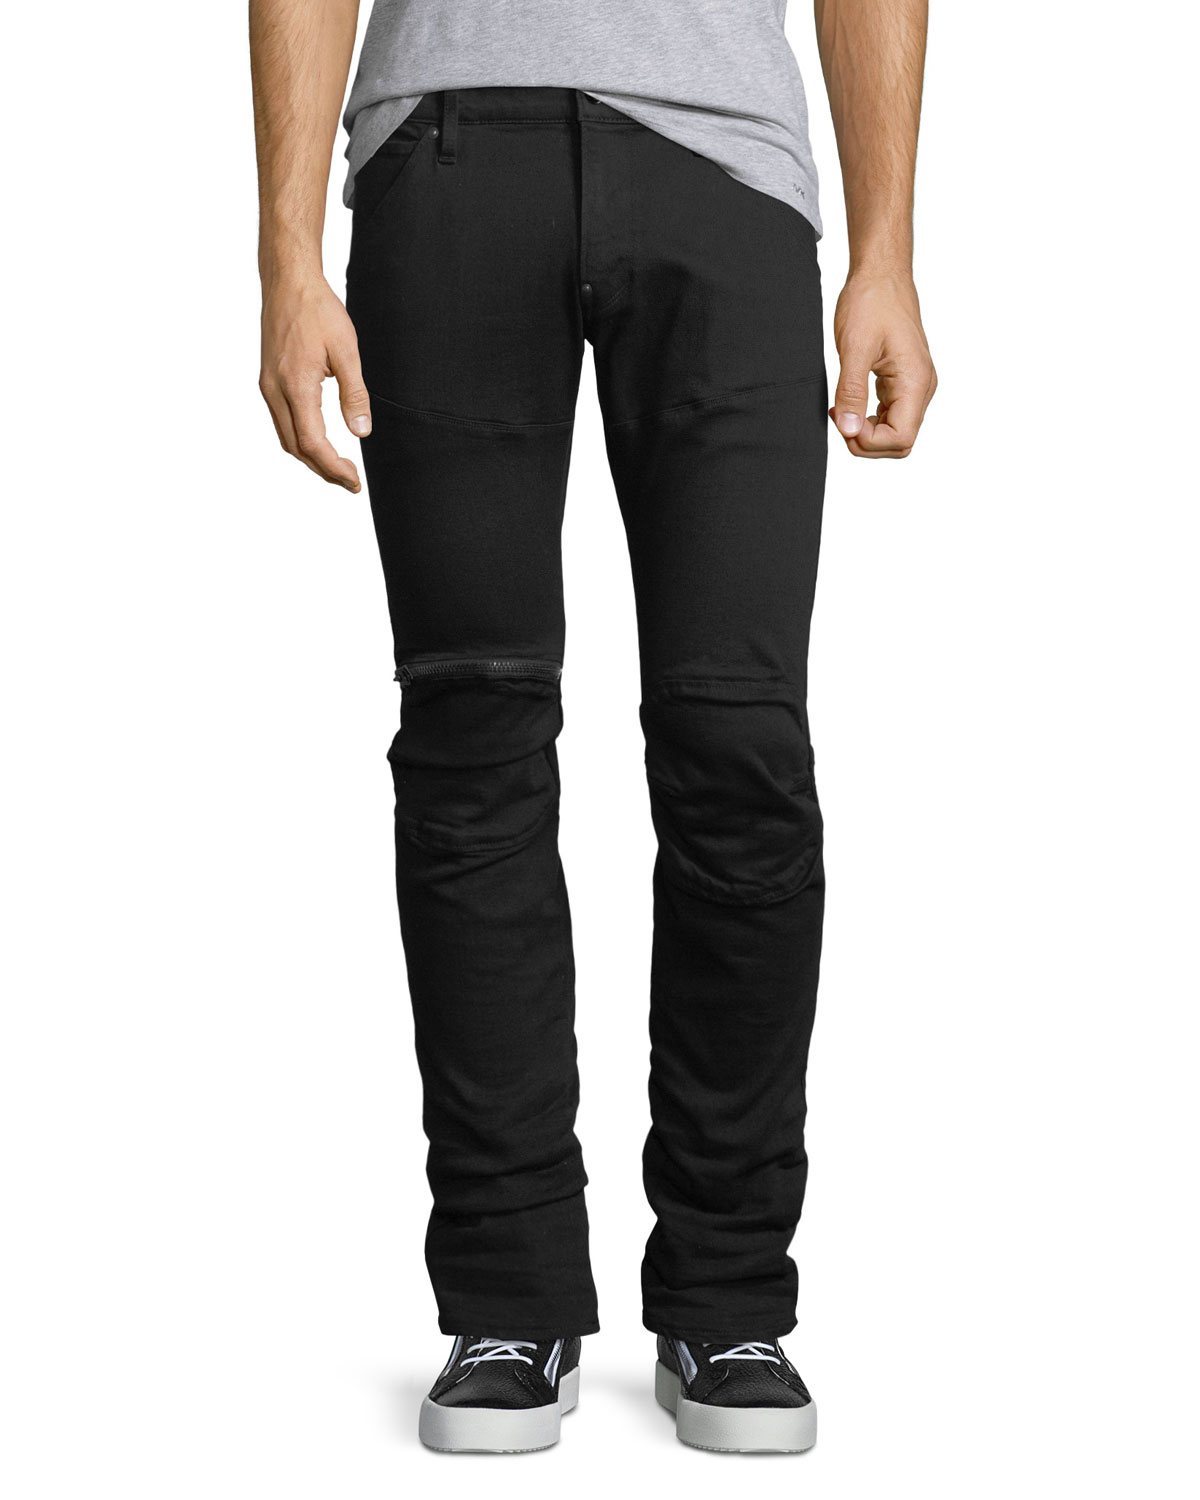 76e20a35f92 G-Star 5620 Slim Zip-Knee Jeans | Neiman Marcus